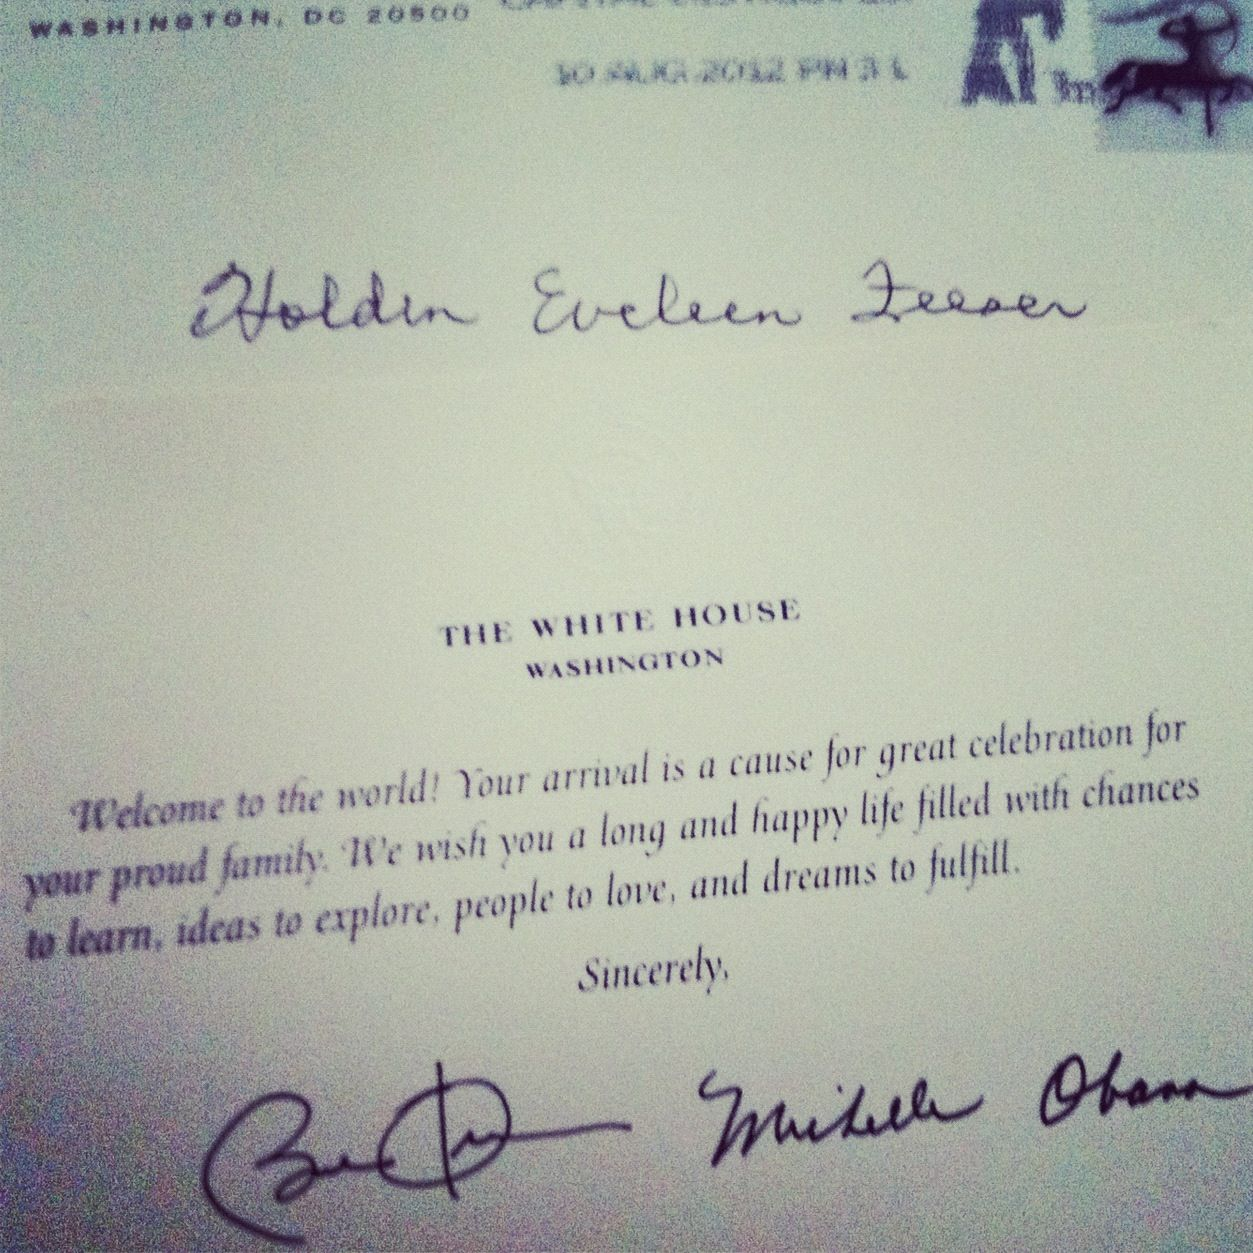 If you send a birth announcement to the white house youll get a if you send a birth announcement to the white house youll get a m4hsunfo Choice Image